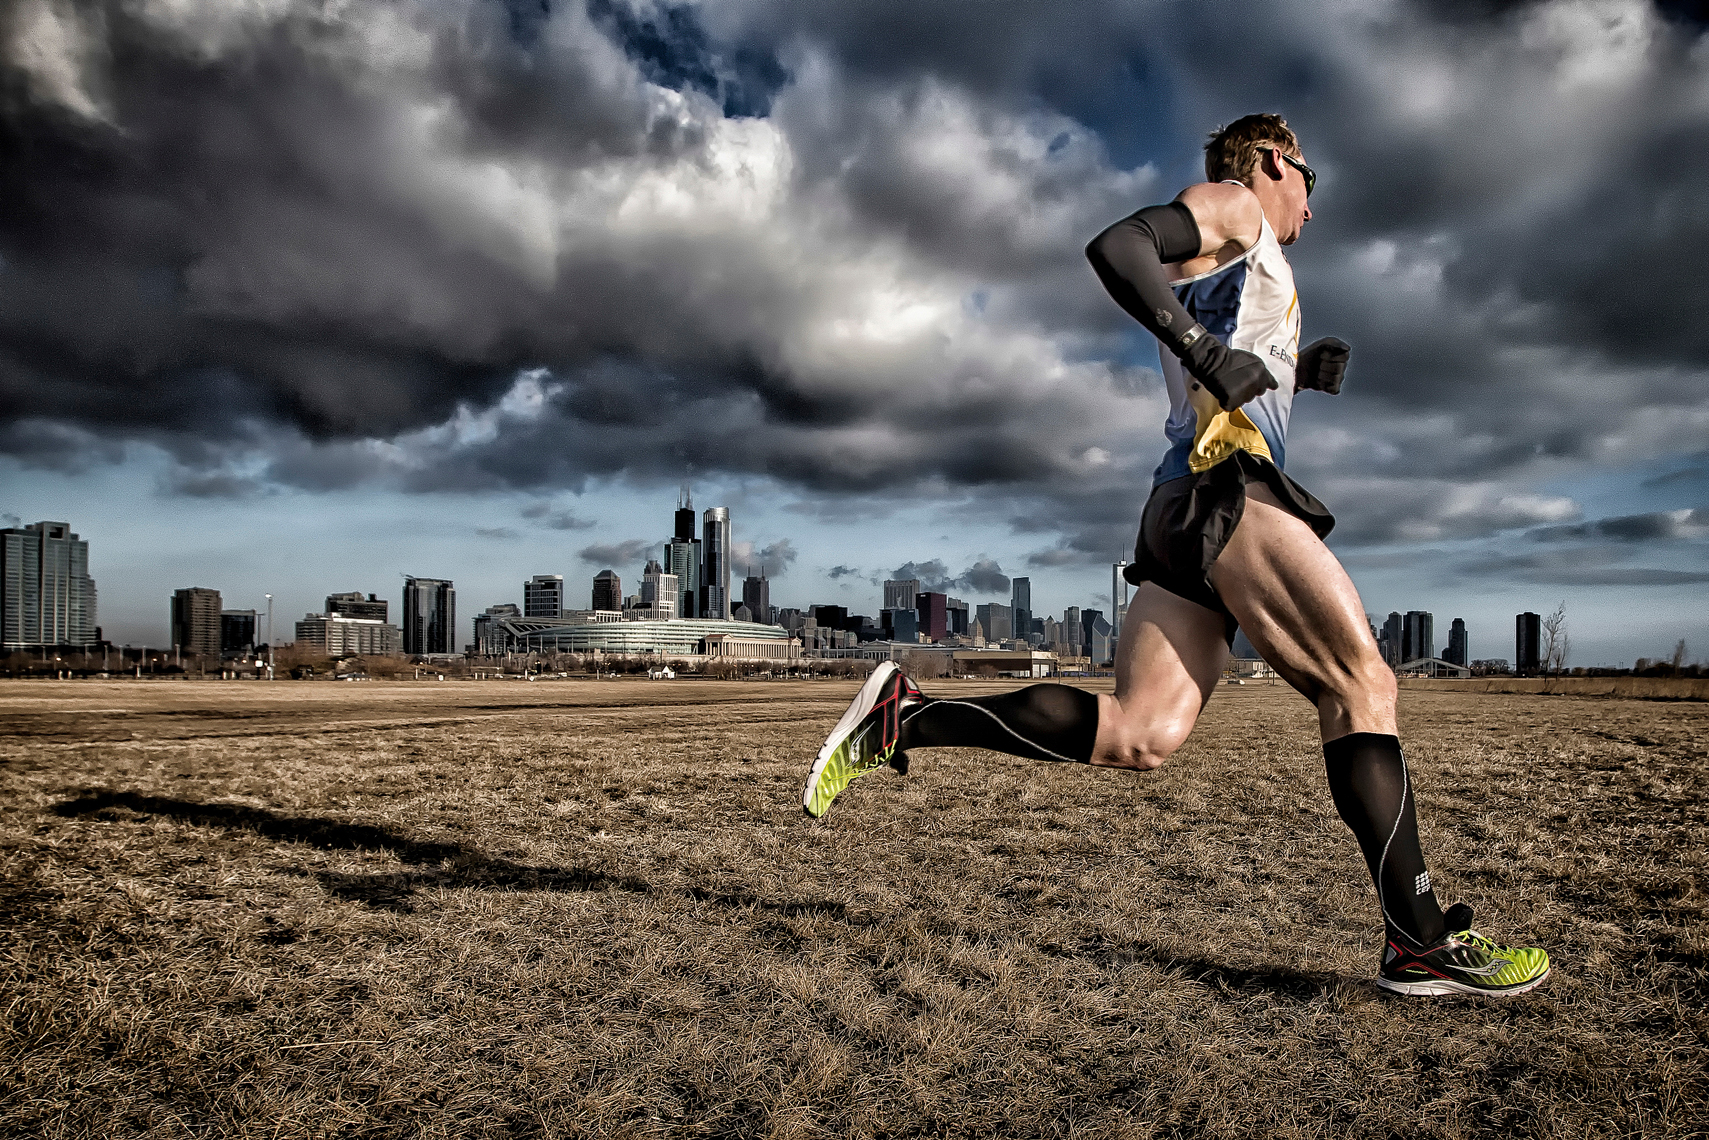 Chicago based Advertising and Commercial Photographer, Specializing in Sports, Action and Lifestyle Photography.